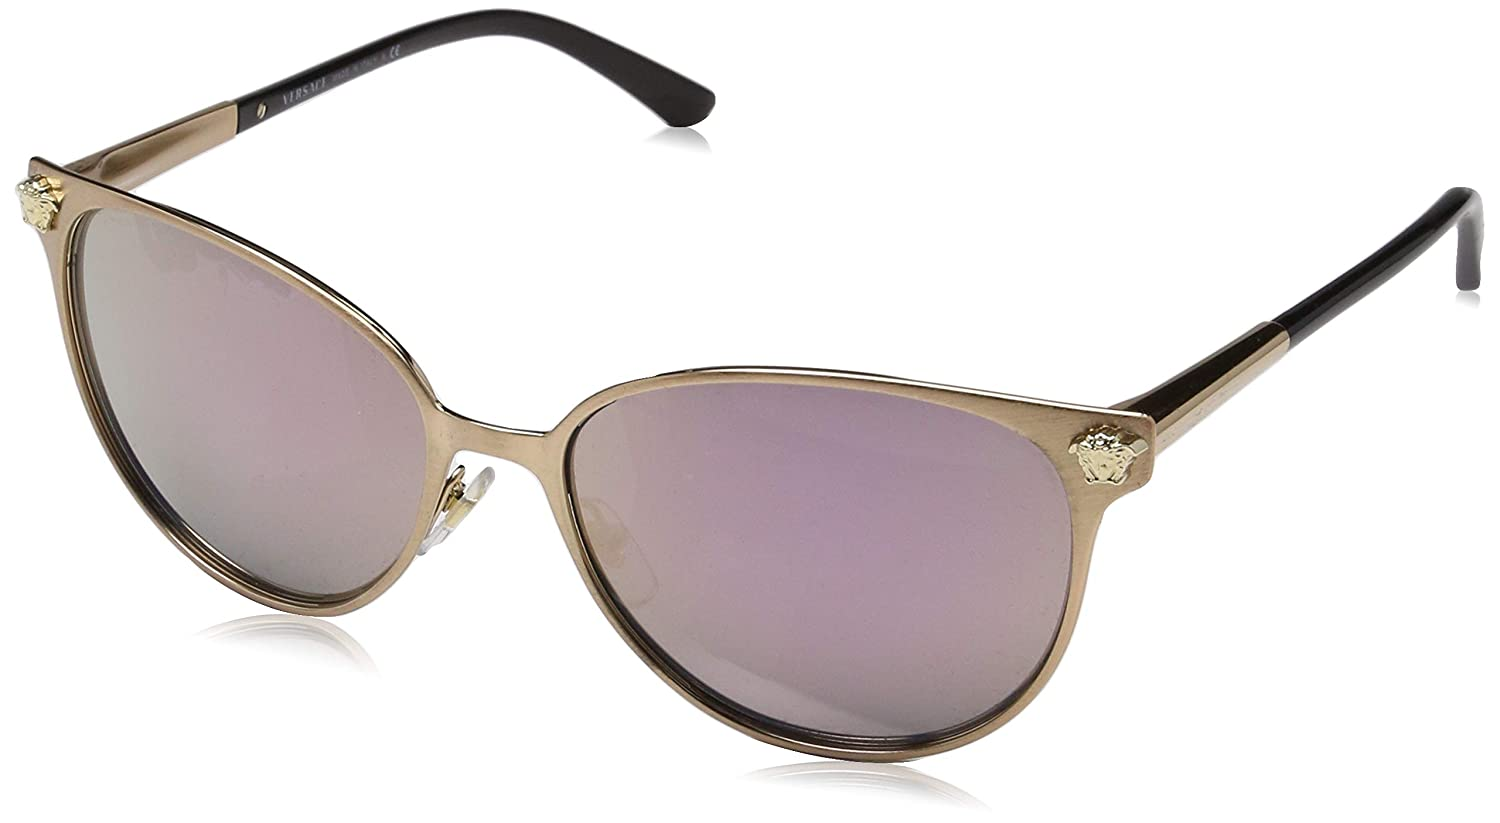 9f8d574f84 Amazon.com  Versace Womens Sunglasses (VE2168) Black Grey Metal - Polarized  - 57mm  Clothing